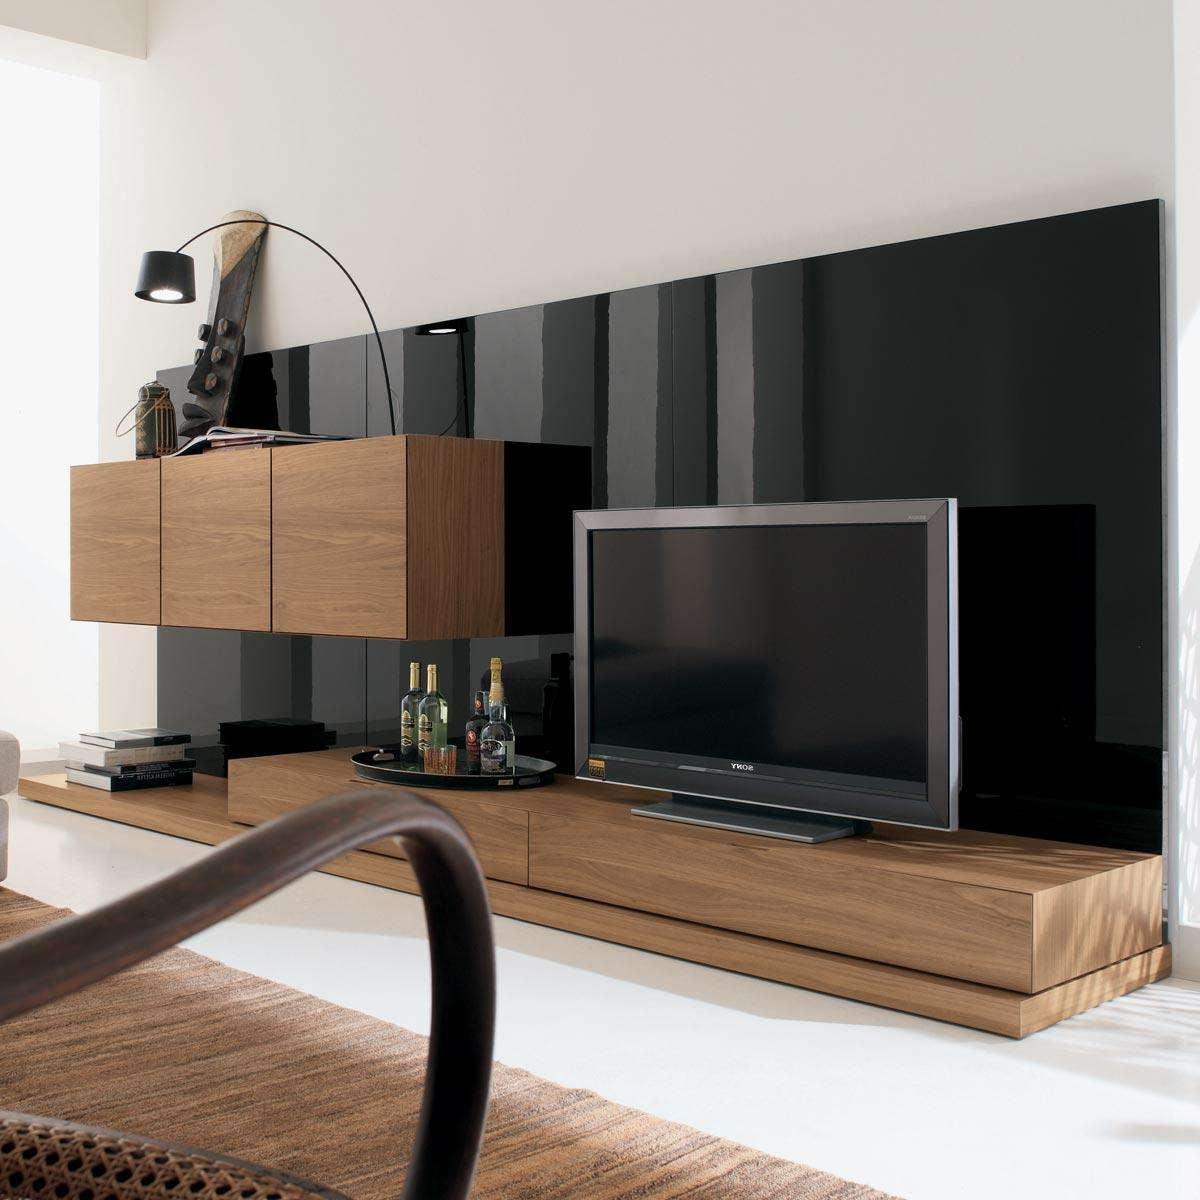 Modern Nature Wood Big Screen Tv Stand Wall Mounted Living Room Pertaining To Contemporary Modern Tv Stands (View 3 of 15)